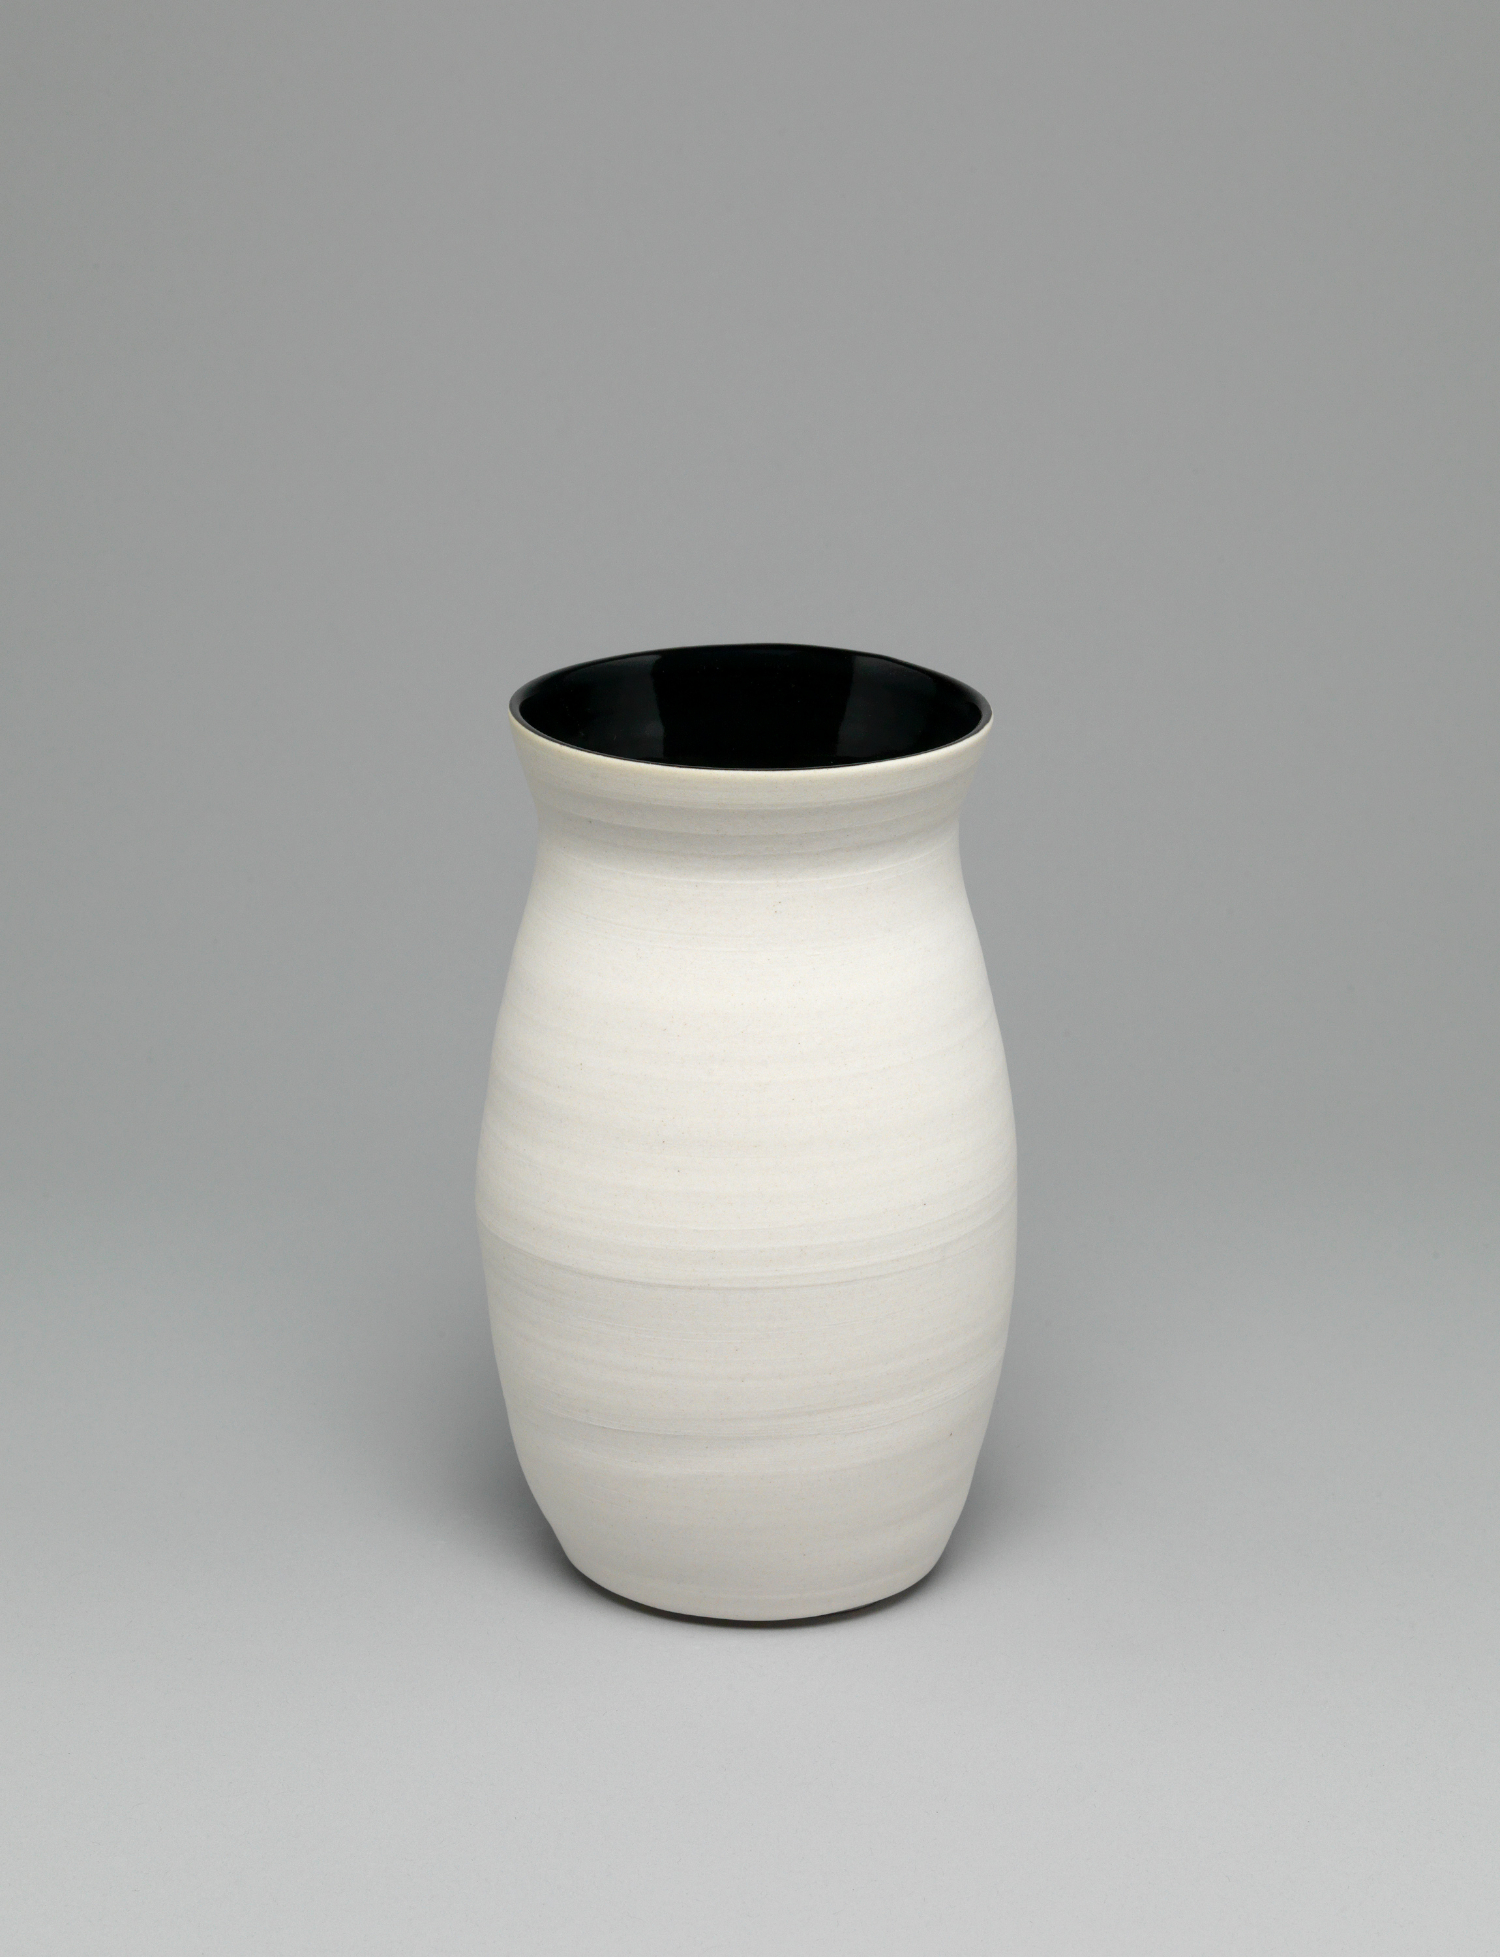 Shio Kusaka  Untitled (hole 7)  2011 Porcelain 7 ¼h x 4 ½w x 4 ½d in SK303